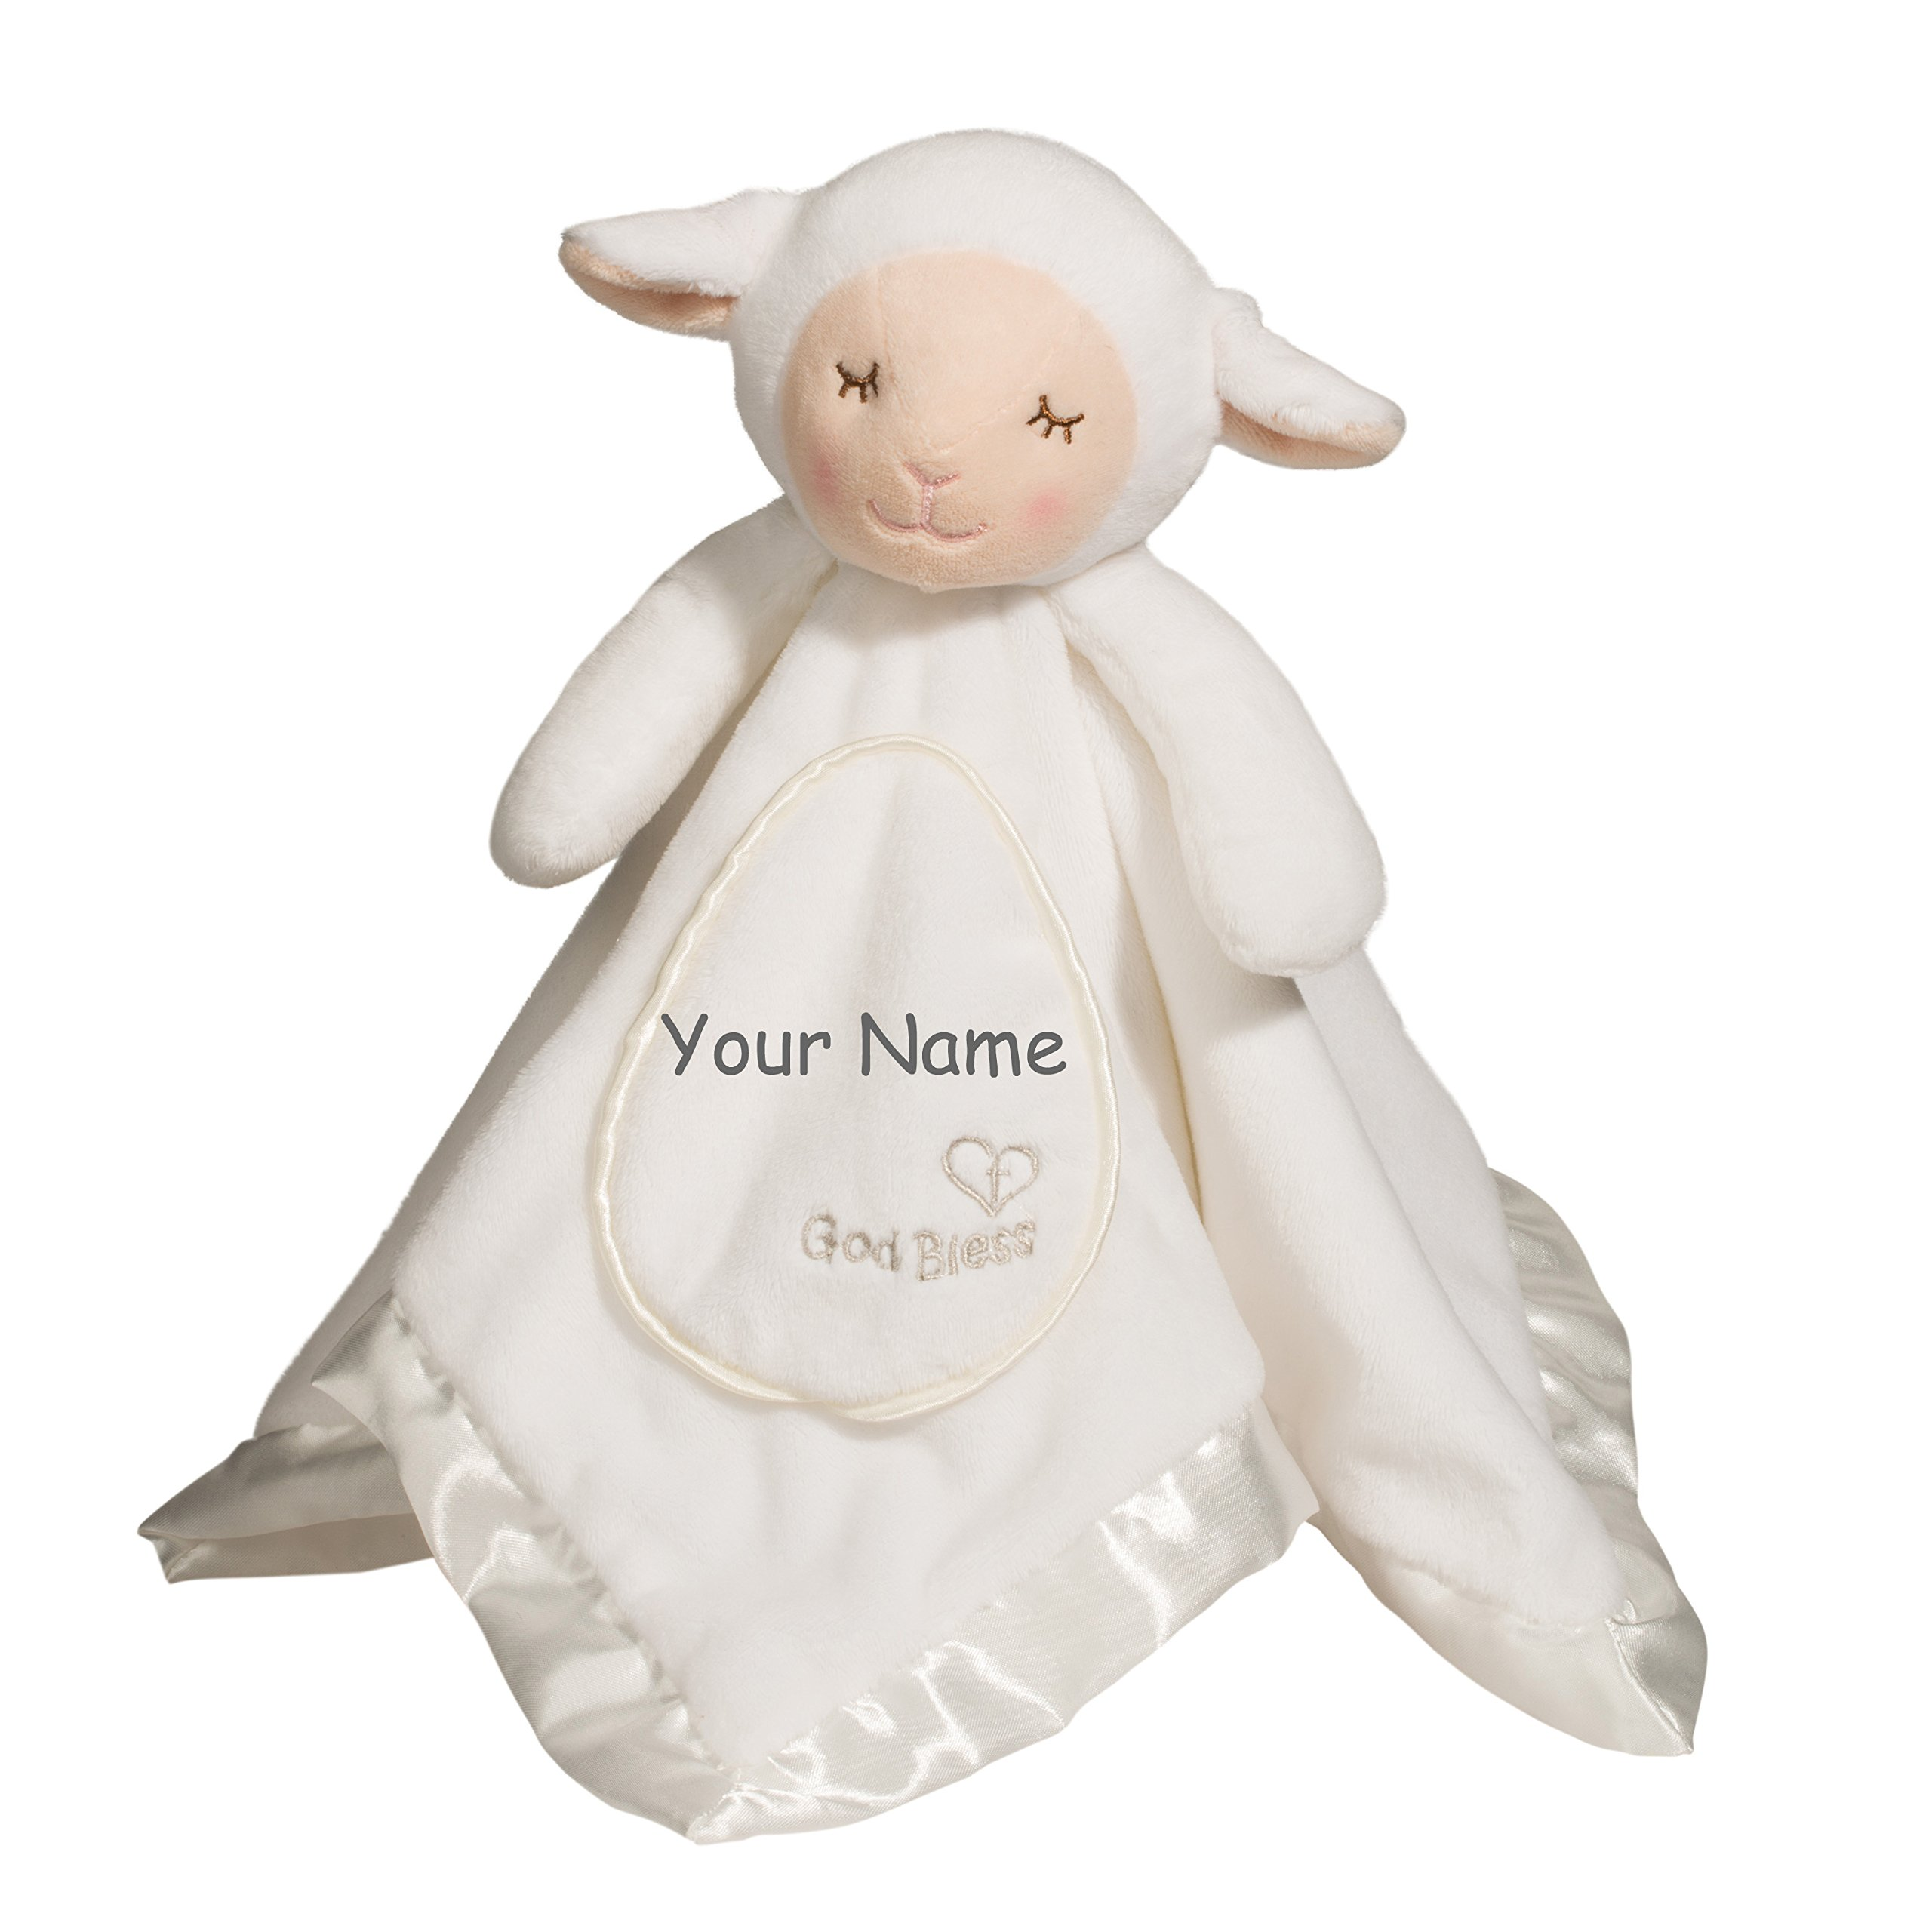 Personalized God Bless White Lamb Lil Snuggler Blanky for Baby Boy or Baby Girl Blanket - 21 Inches